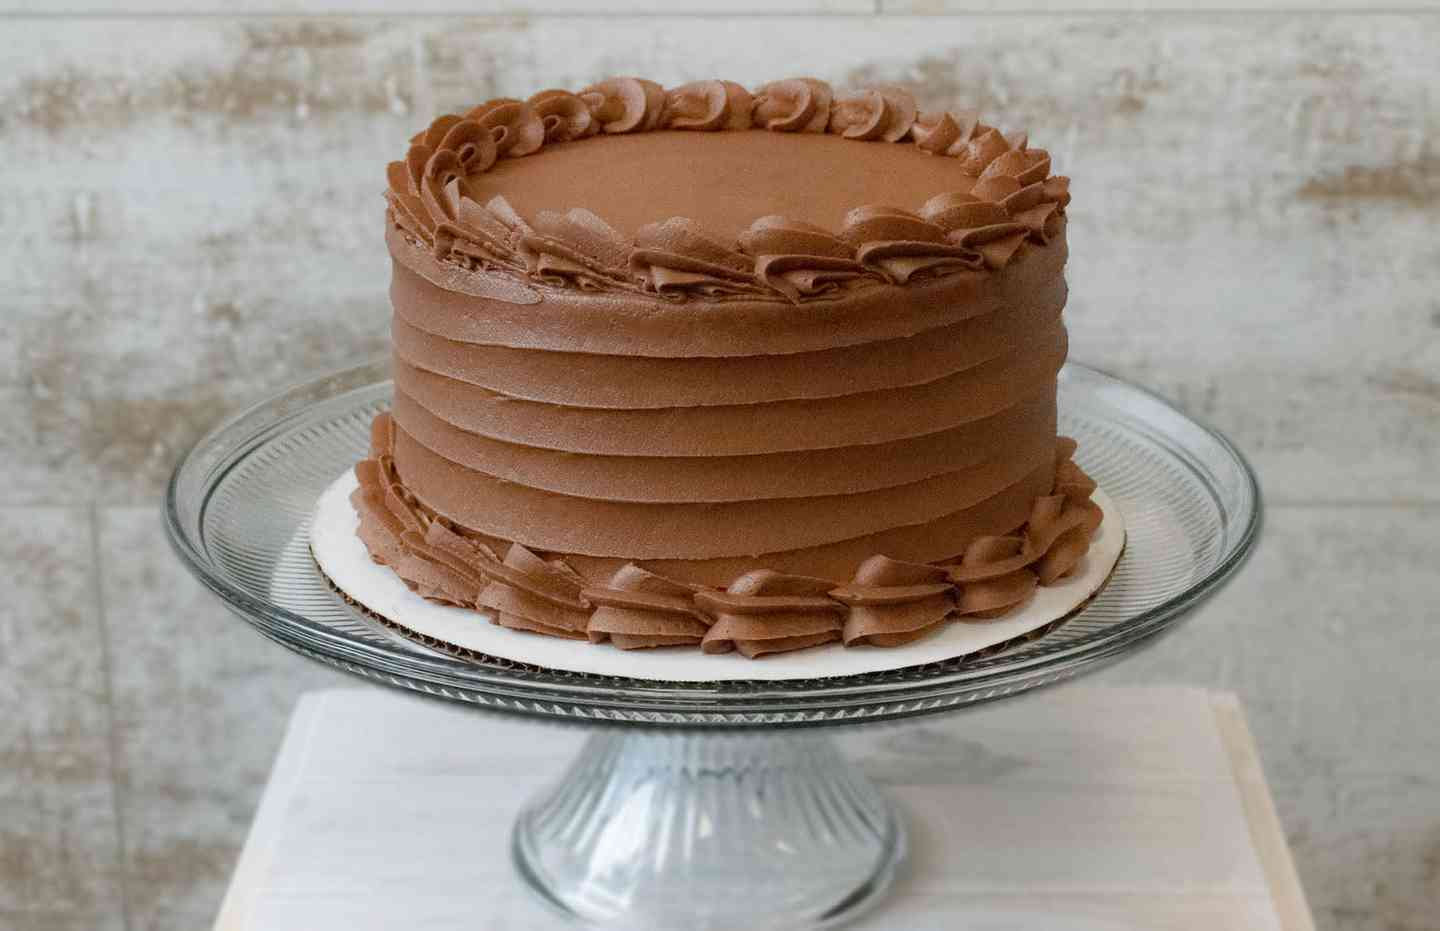 Gluten Friendly Yellow Cake: Chocolate Buttercream or Vanilla Buttercream